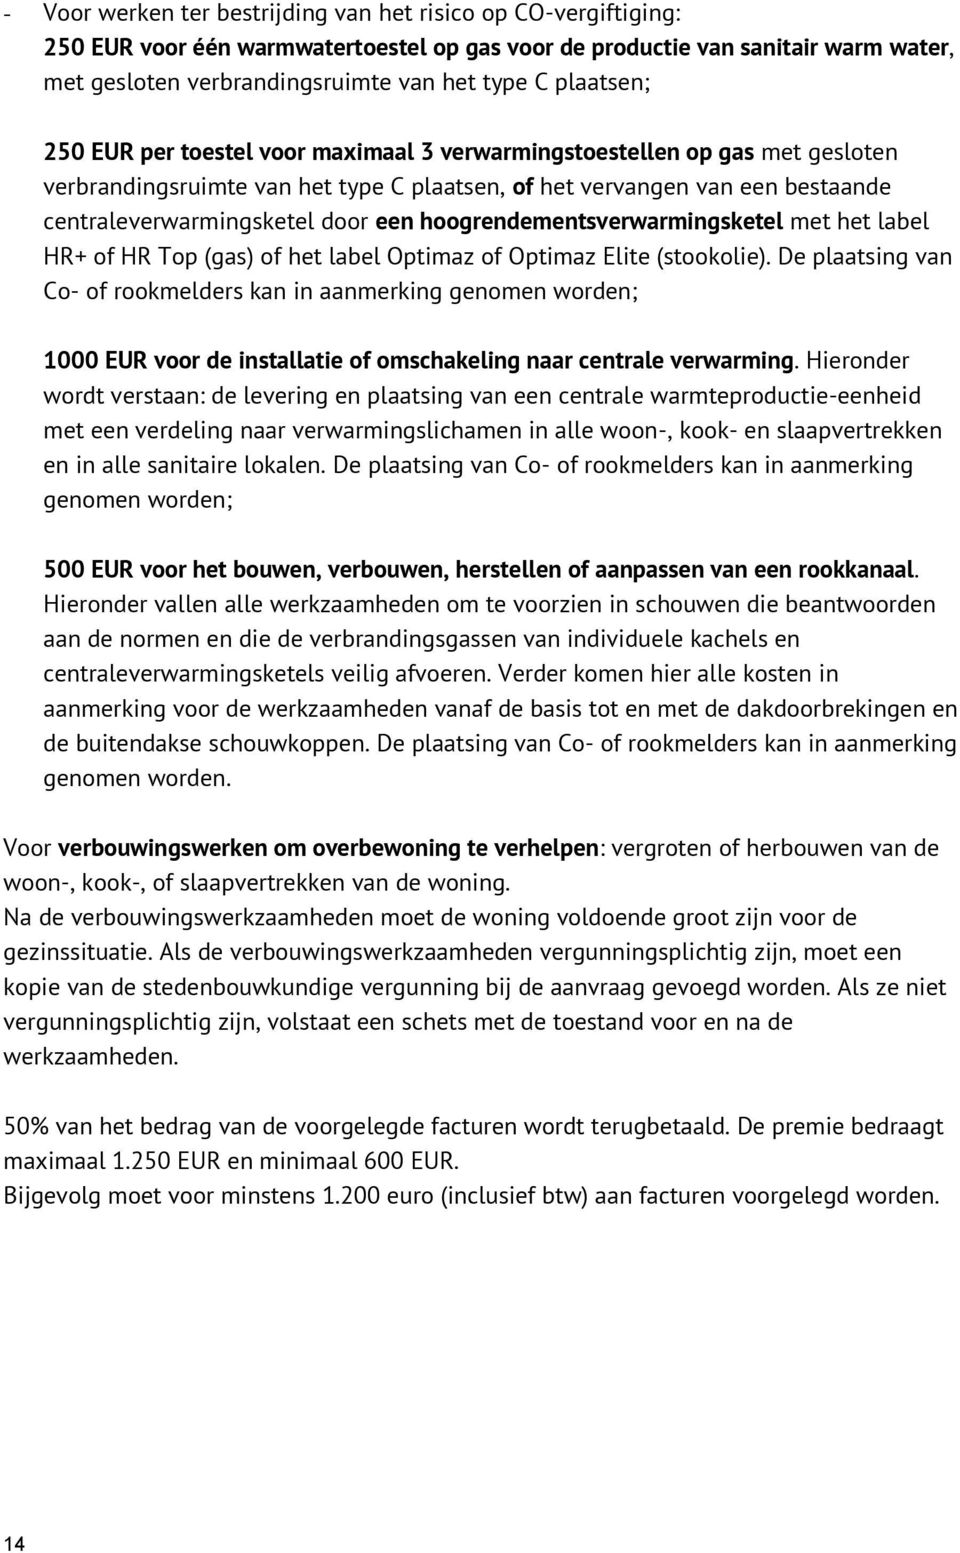 een hoogrendementsverwarmingsketel met het label HR+ of HR Top (gas) of het label Optimaz of Optimaz Elite (stookolie).